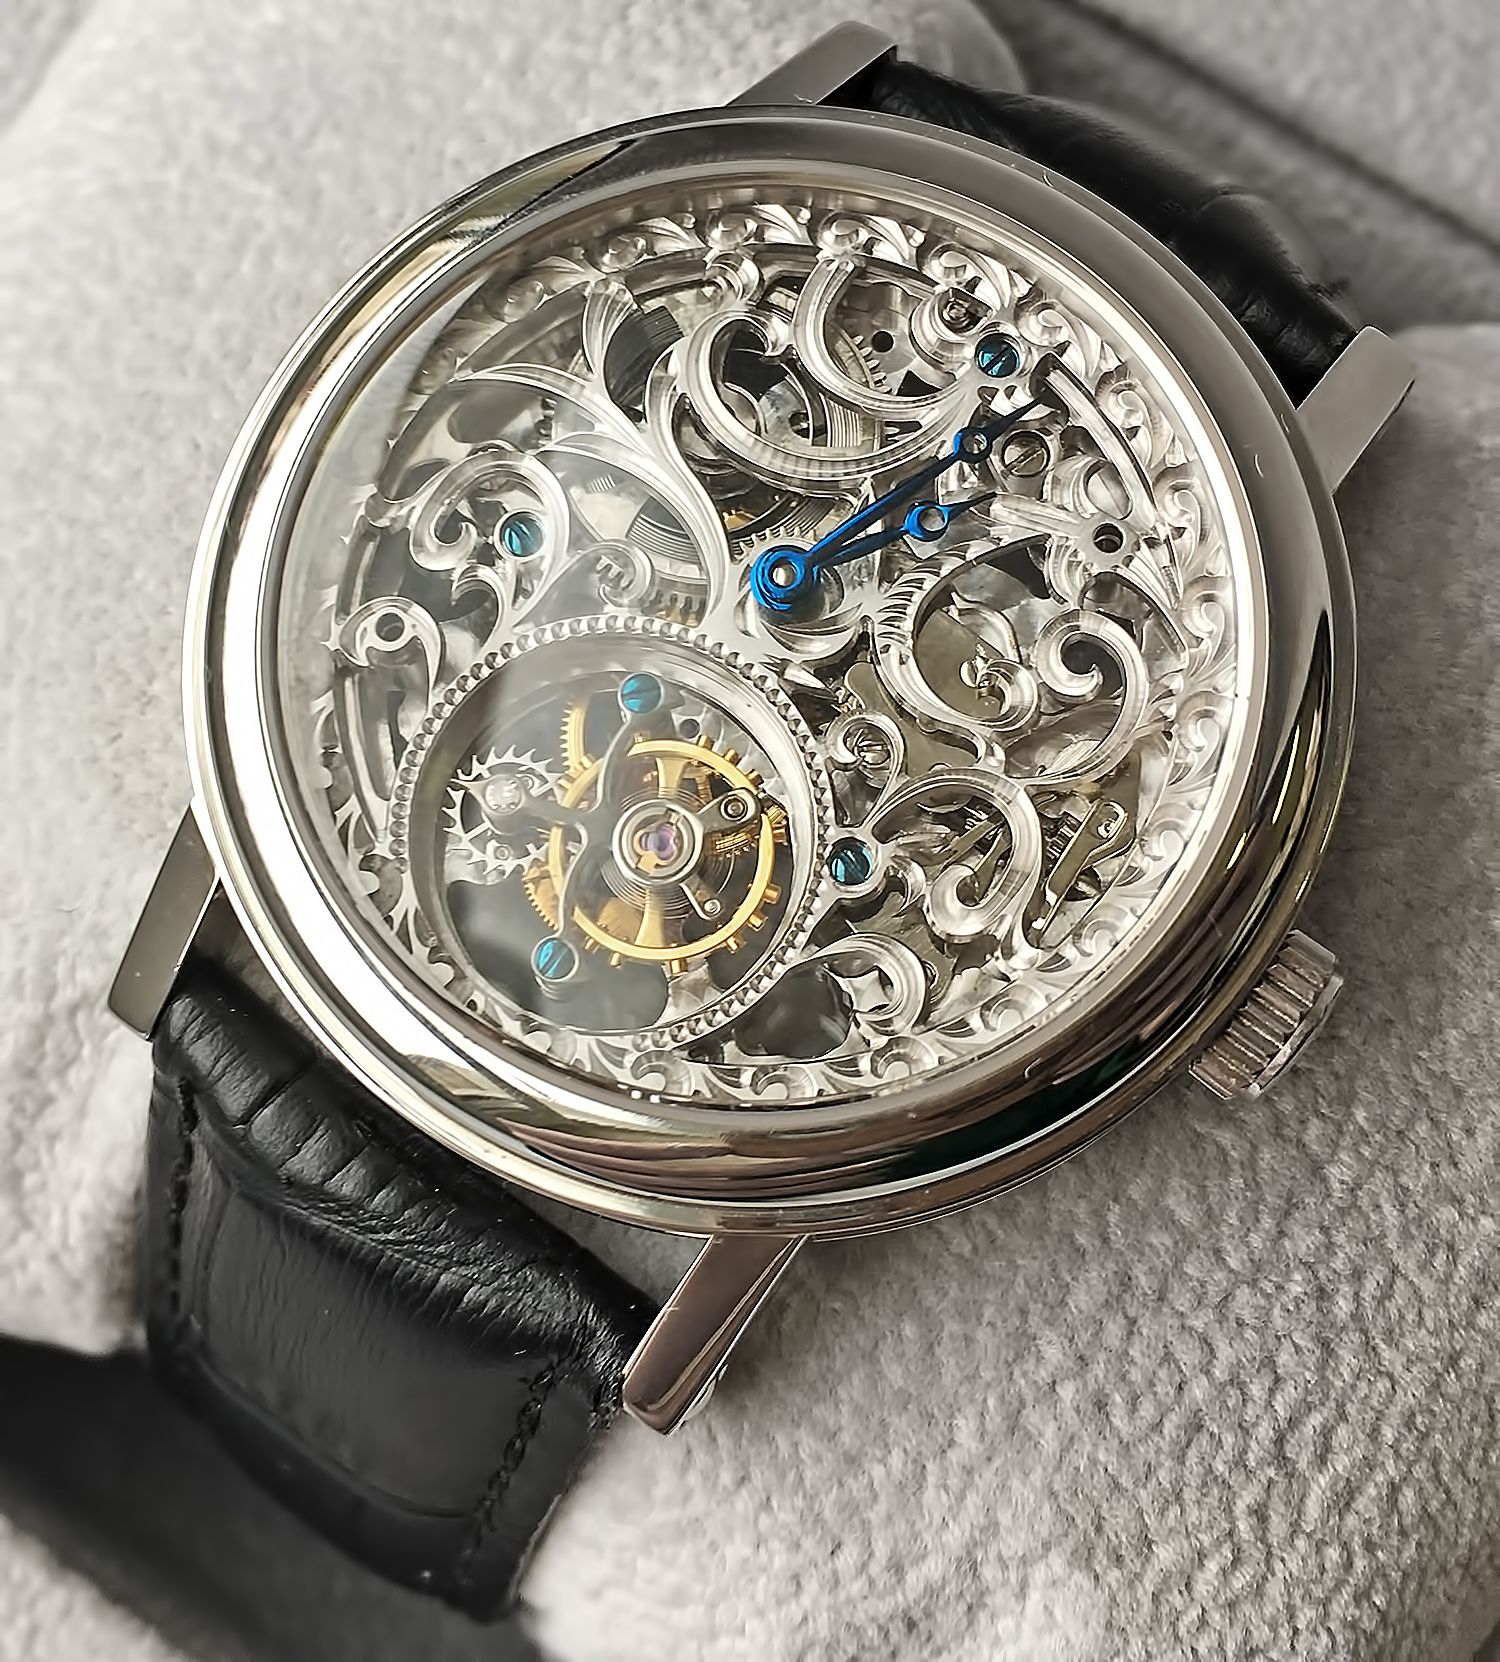 Точная копия часов Breguet Classique Skeleton Tourbillon Steel Watch